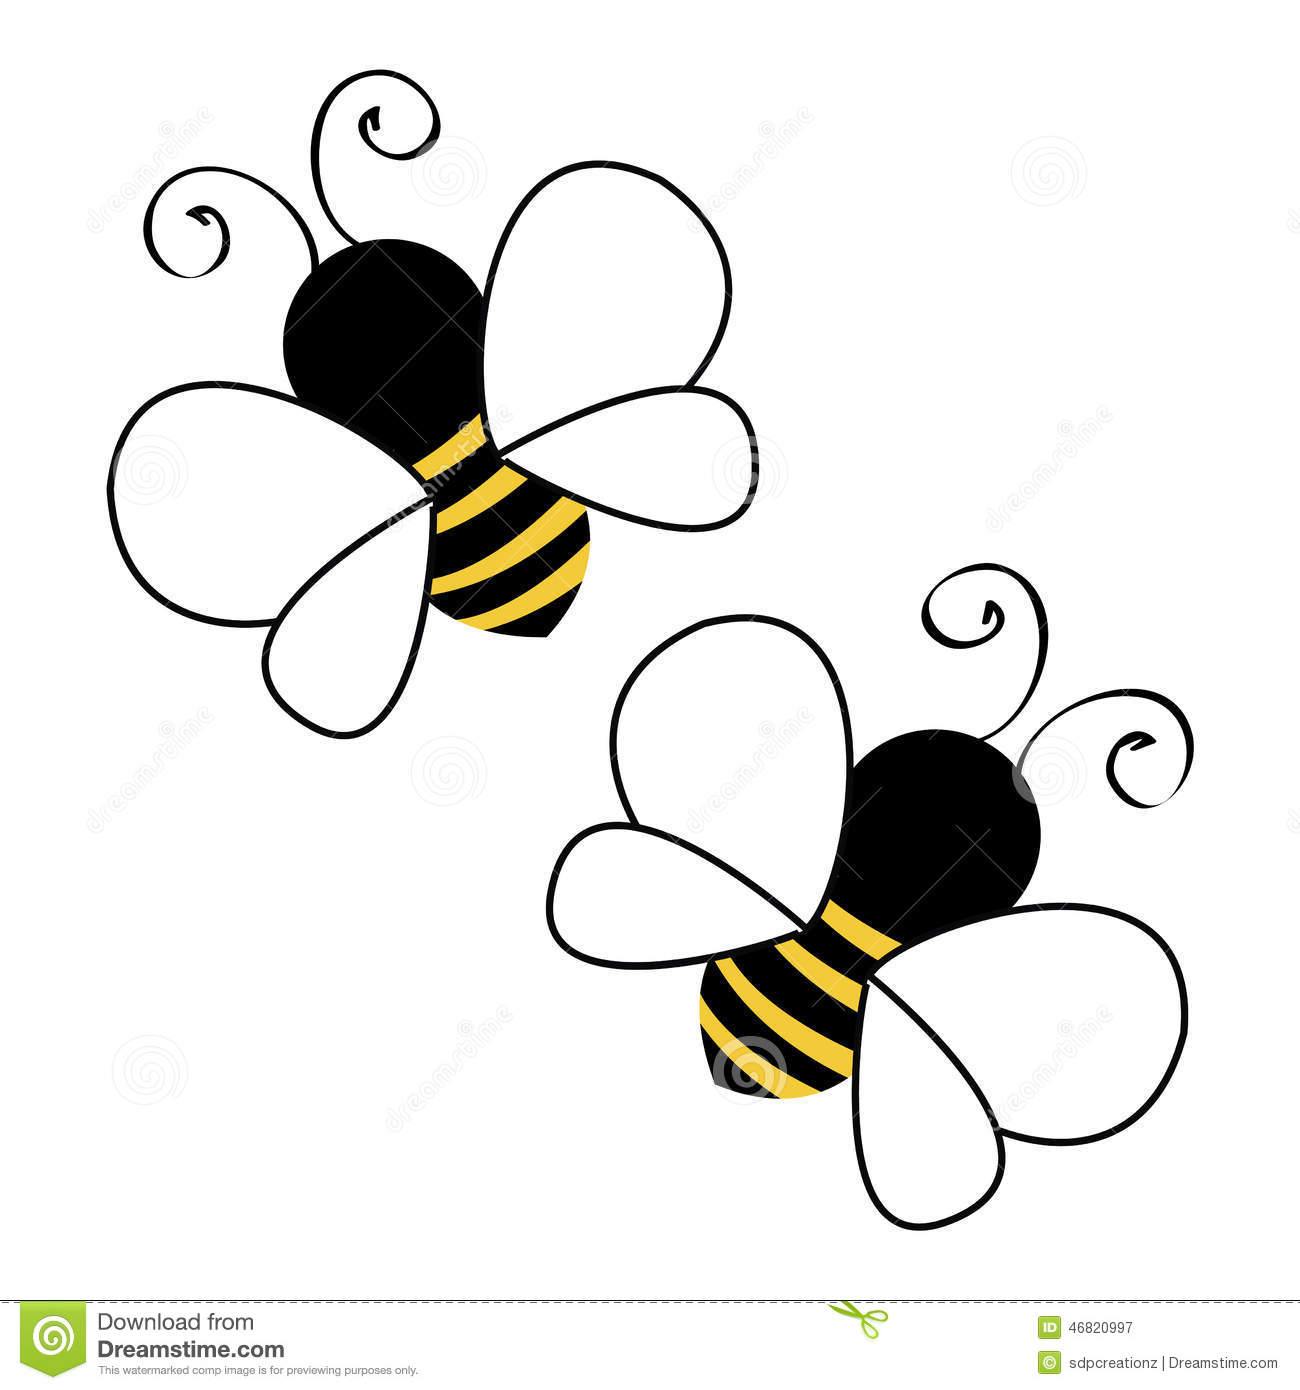 Two Bees Flying Stock Vector - Image: 46820997